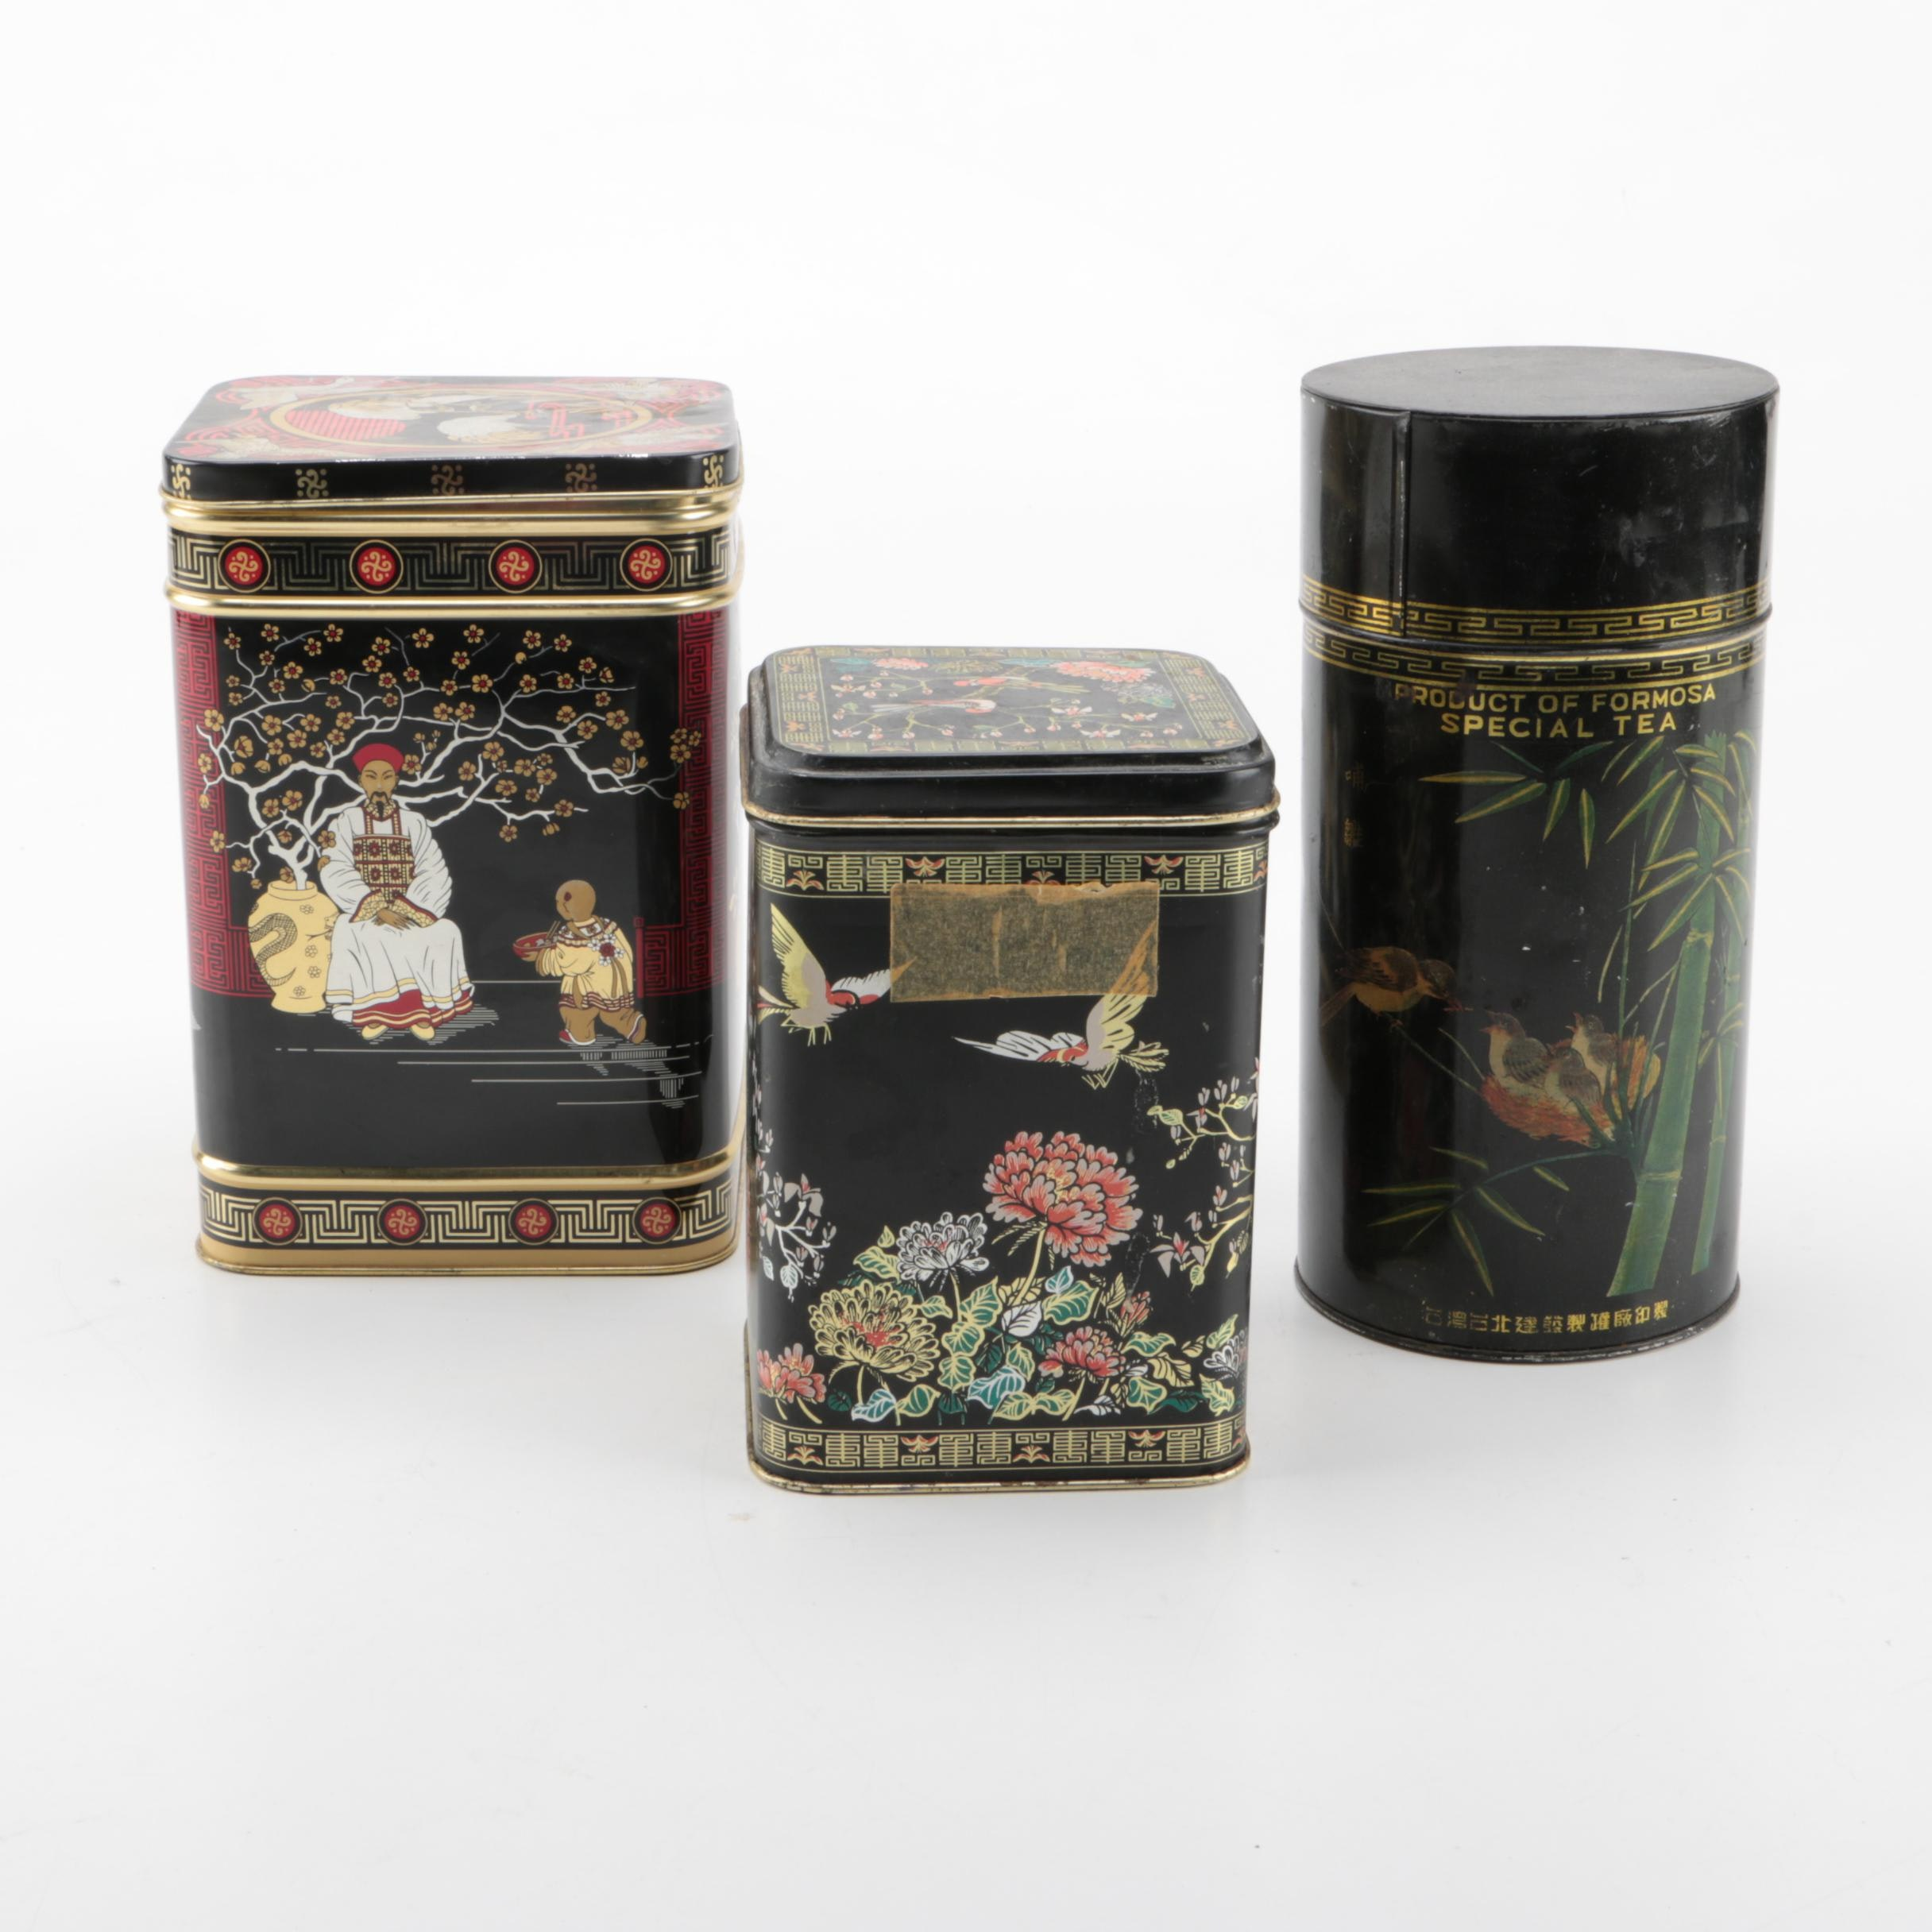 Japanese Metal Tea Tins